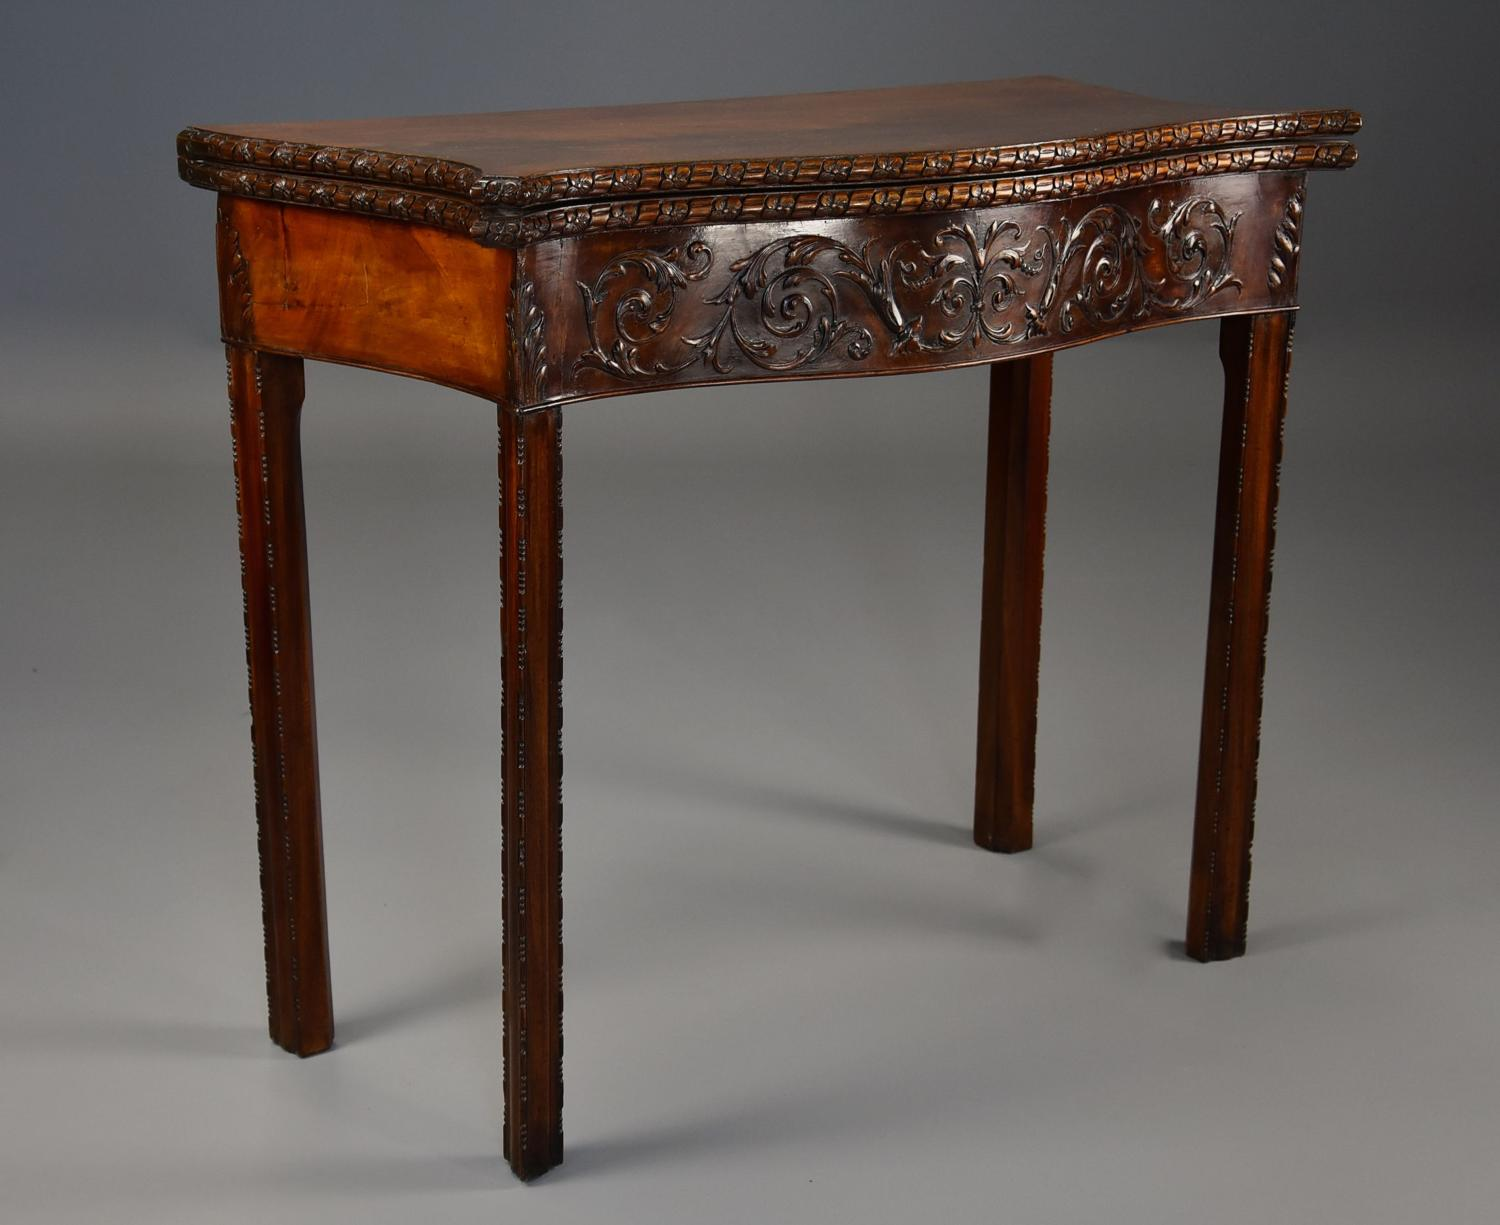 Late 19thc Chippendale style mahogany serpentine shaped card table